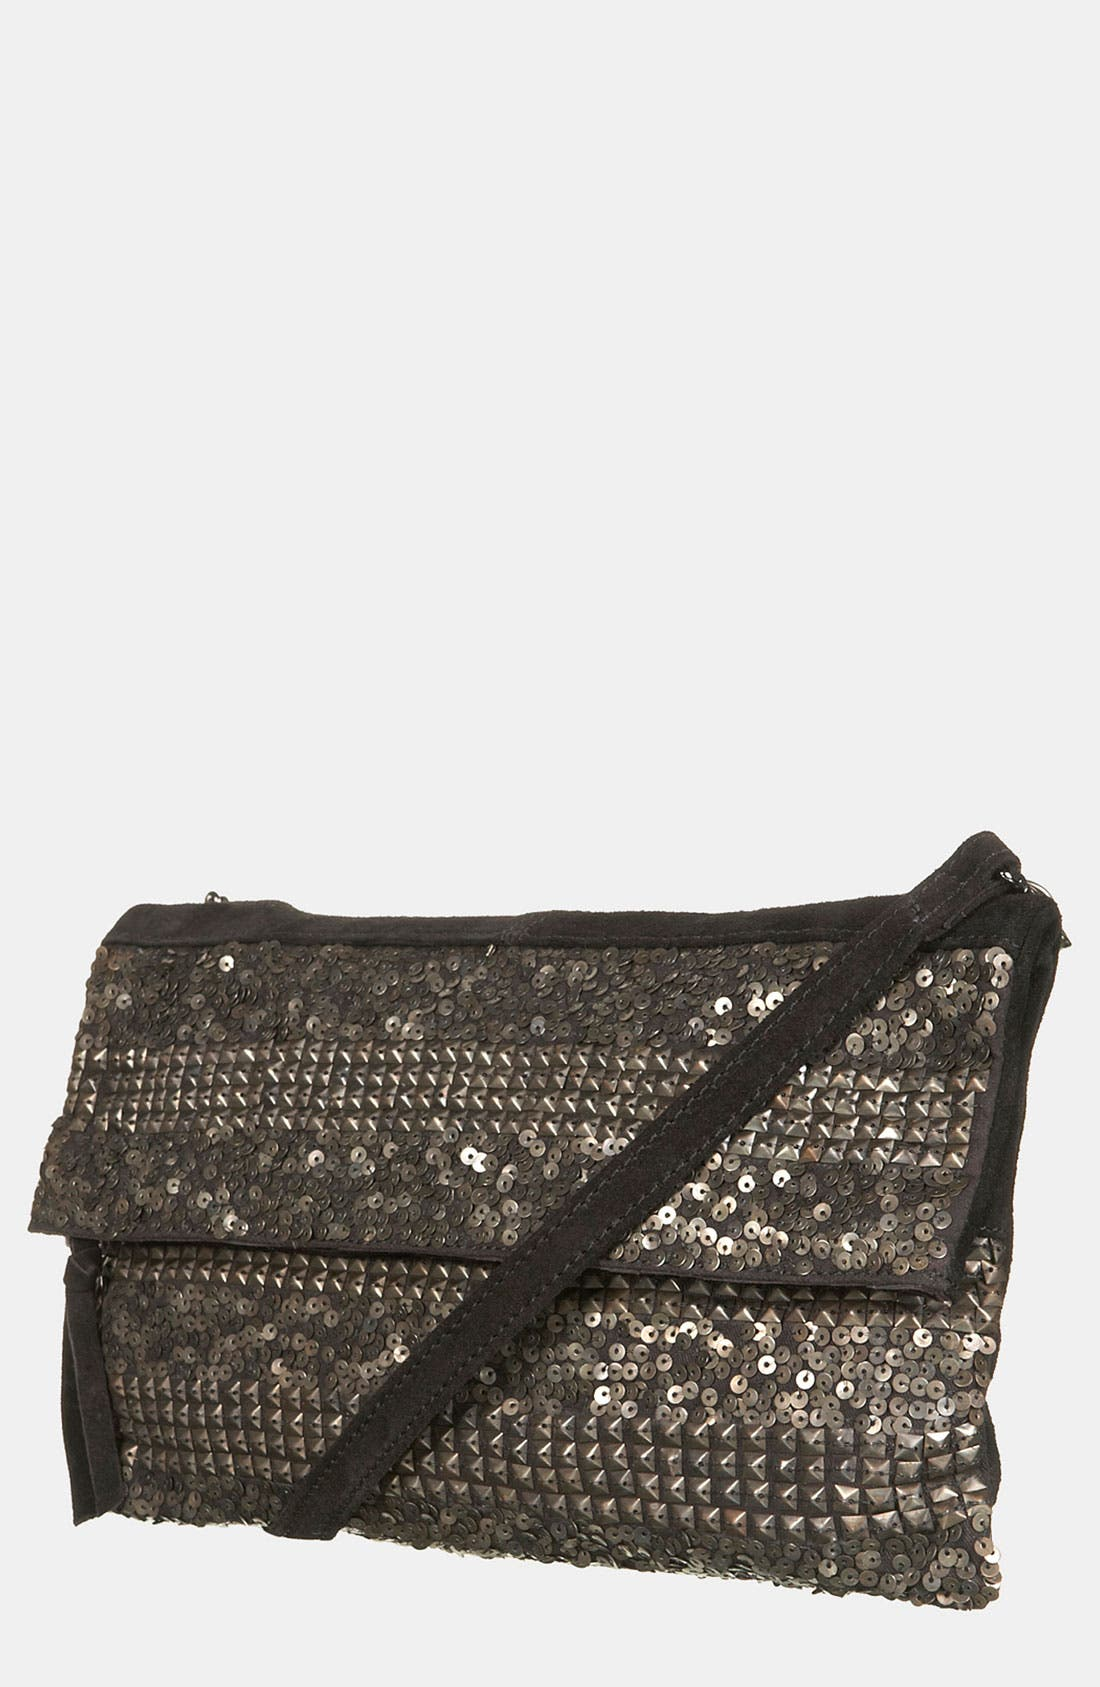 Alternate Image 1 Selected - Topshop Stud Stripe Metallic Clutch